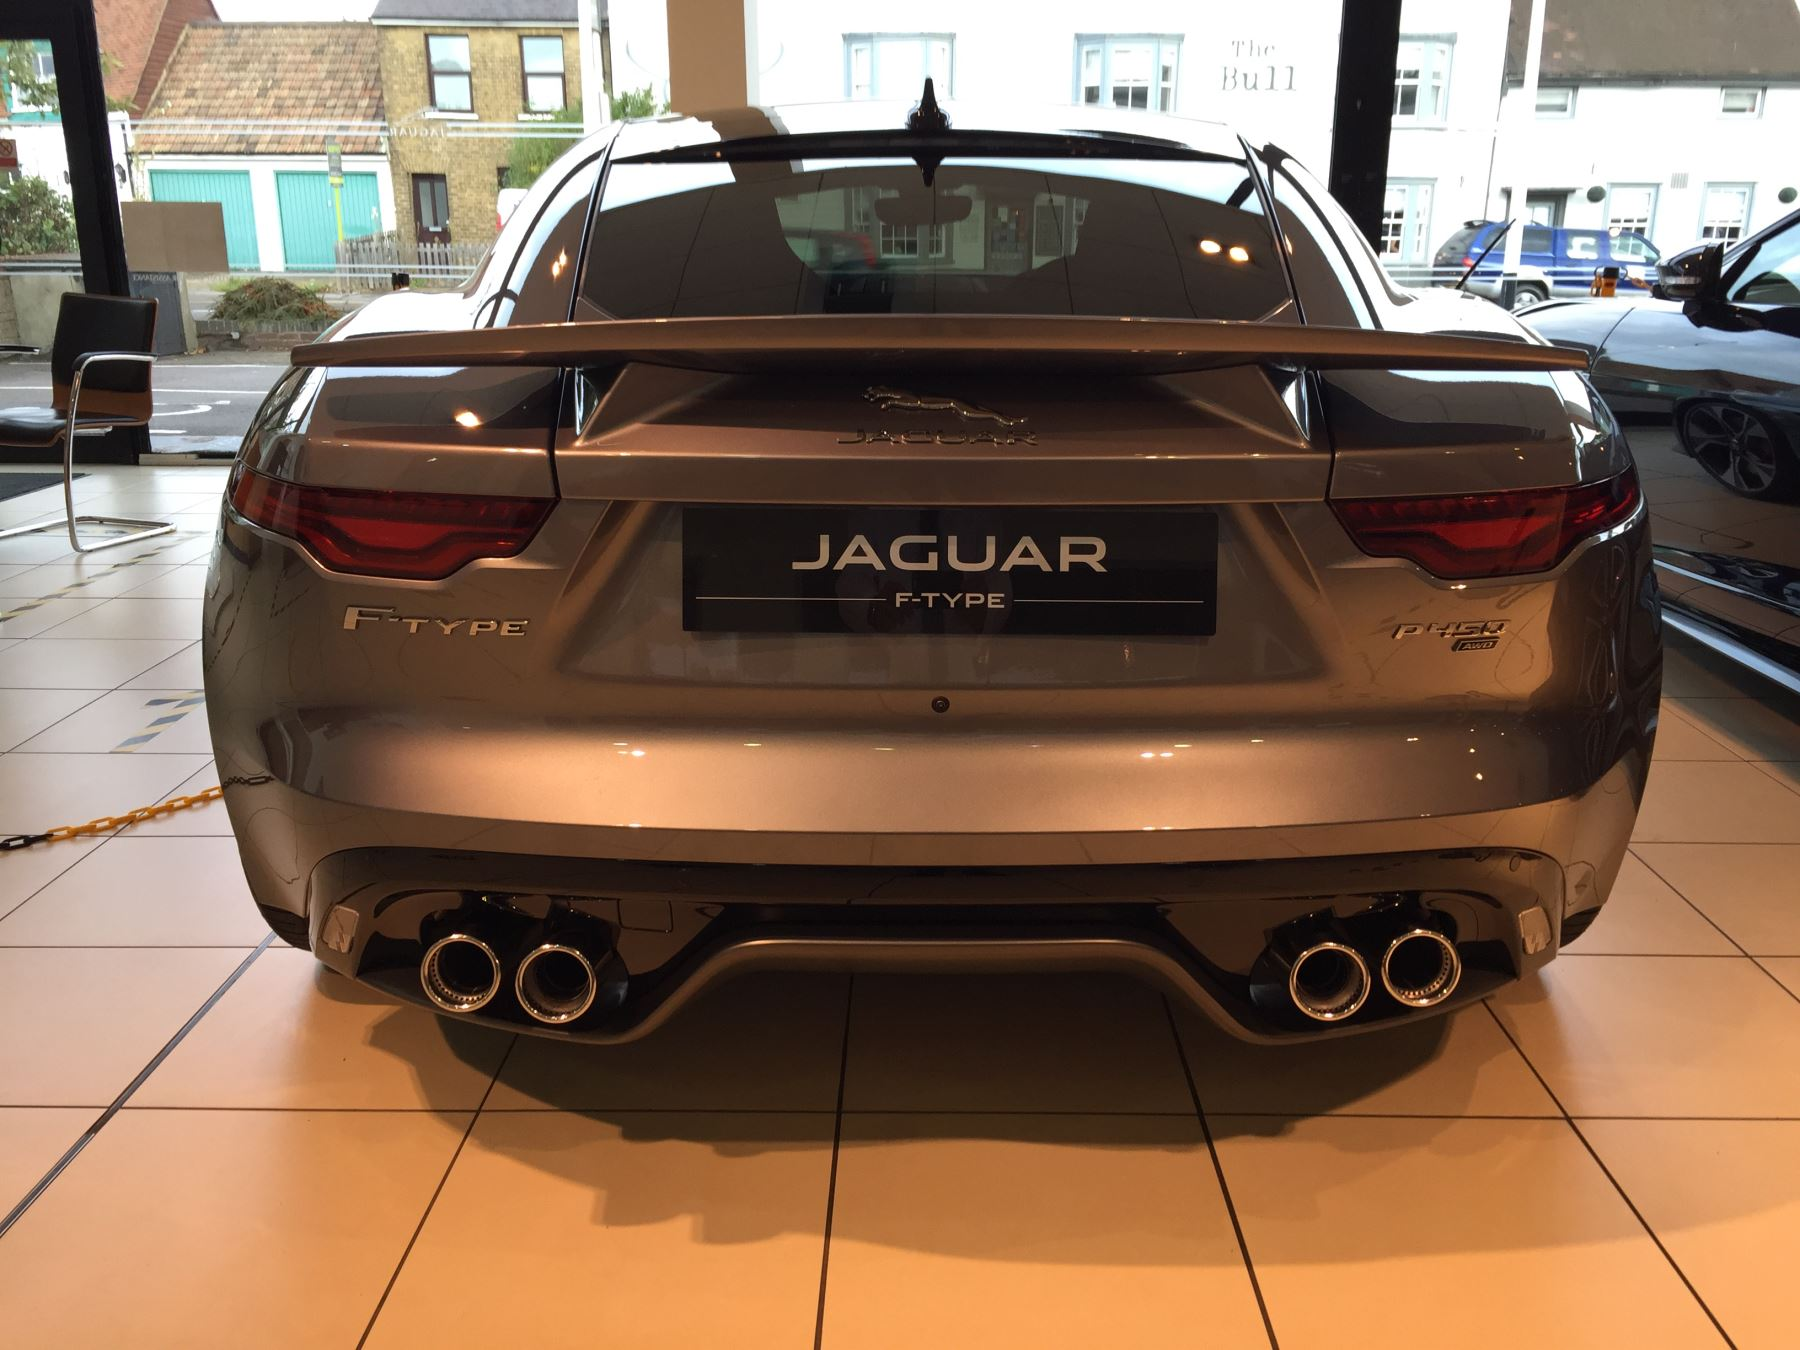 Jaguar F-TYPE 5.0 P450 Supercharged V8 First Edition SPECIAL EDITIONS image 3